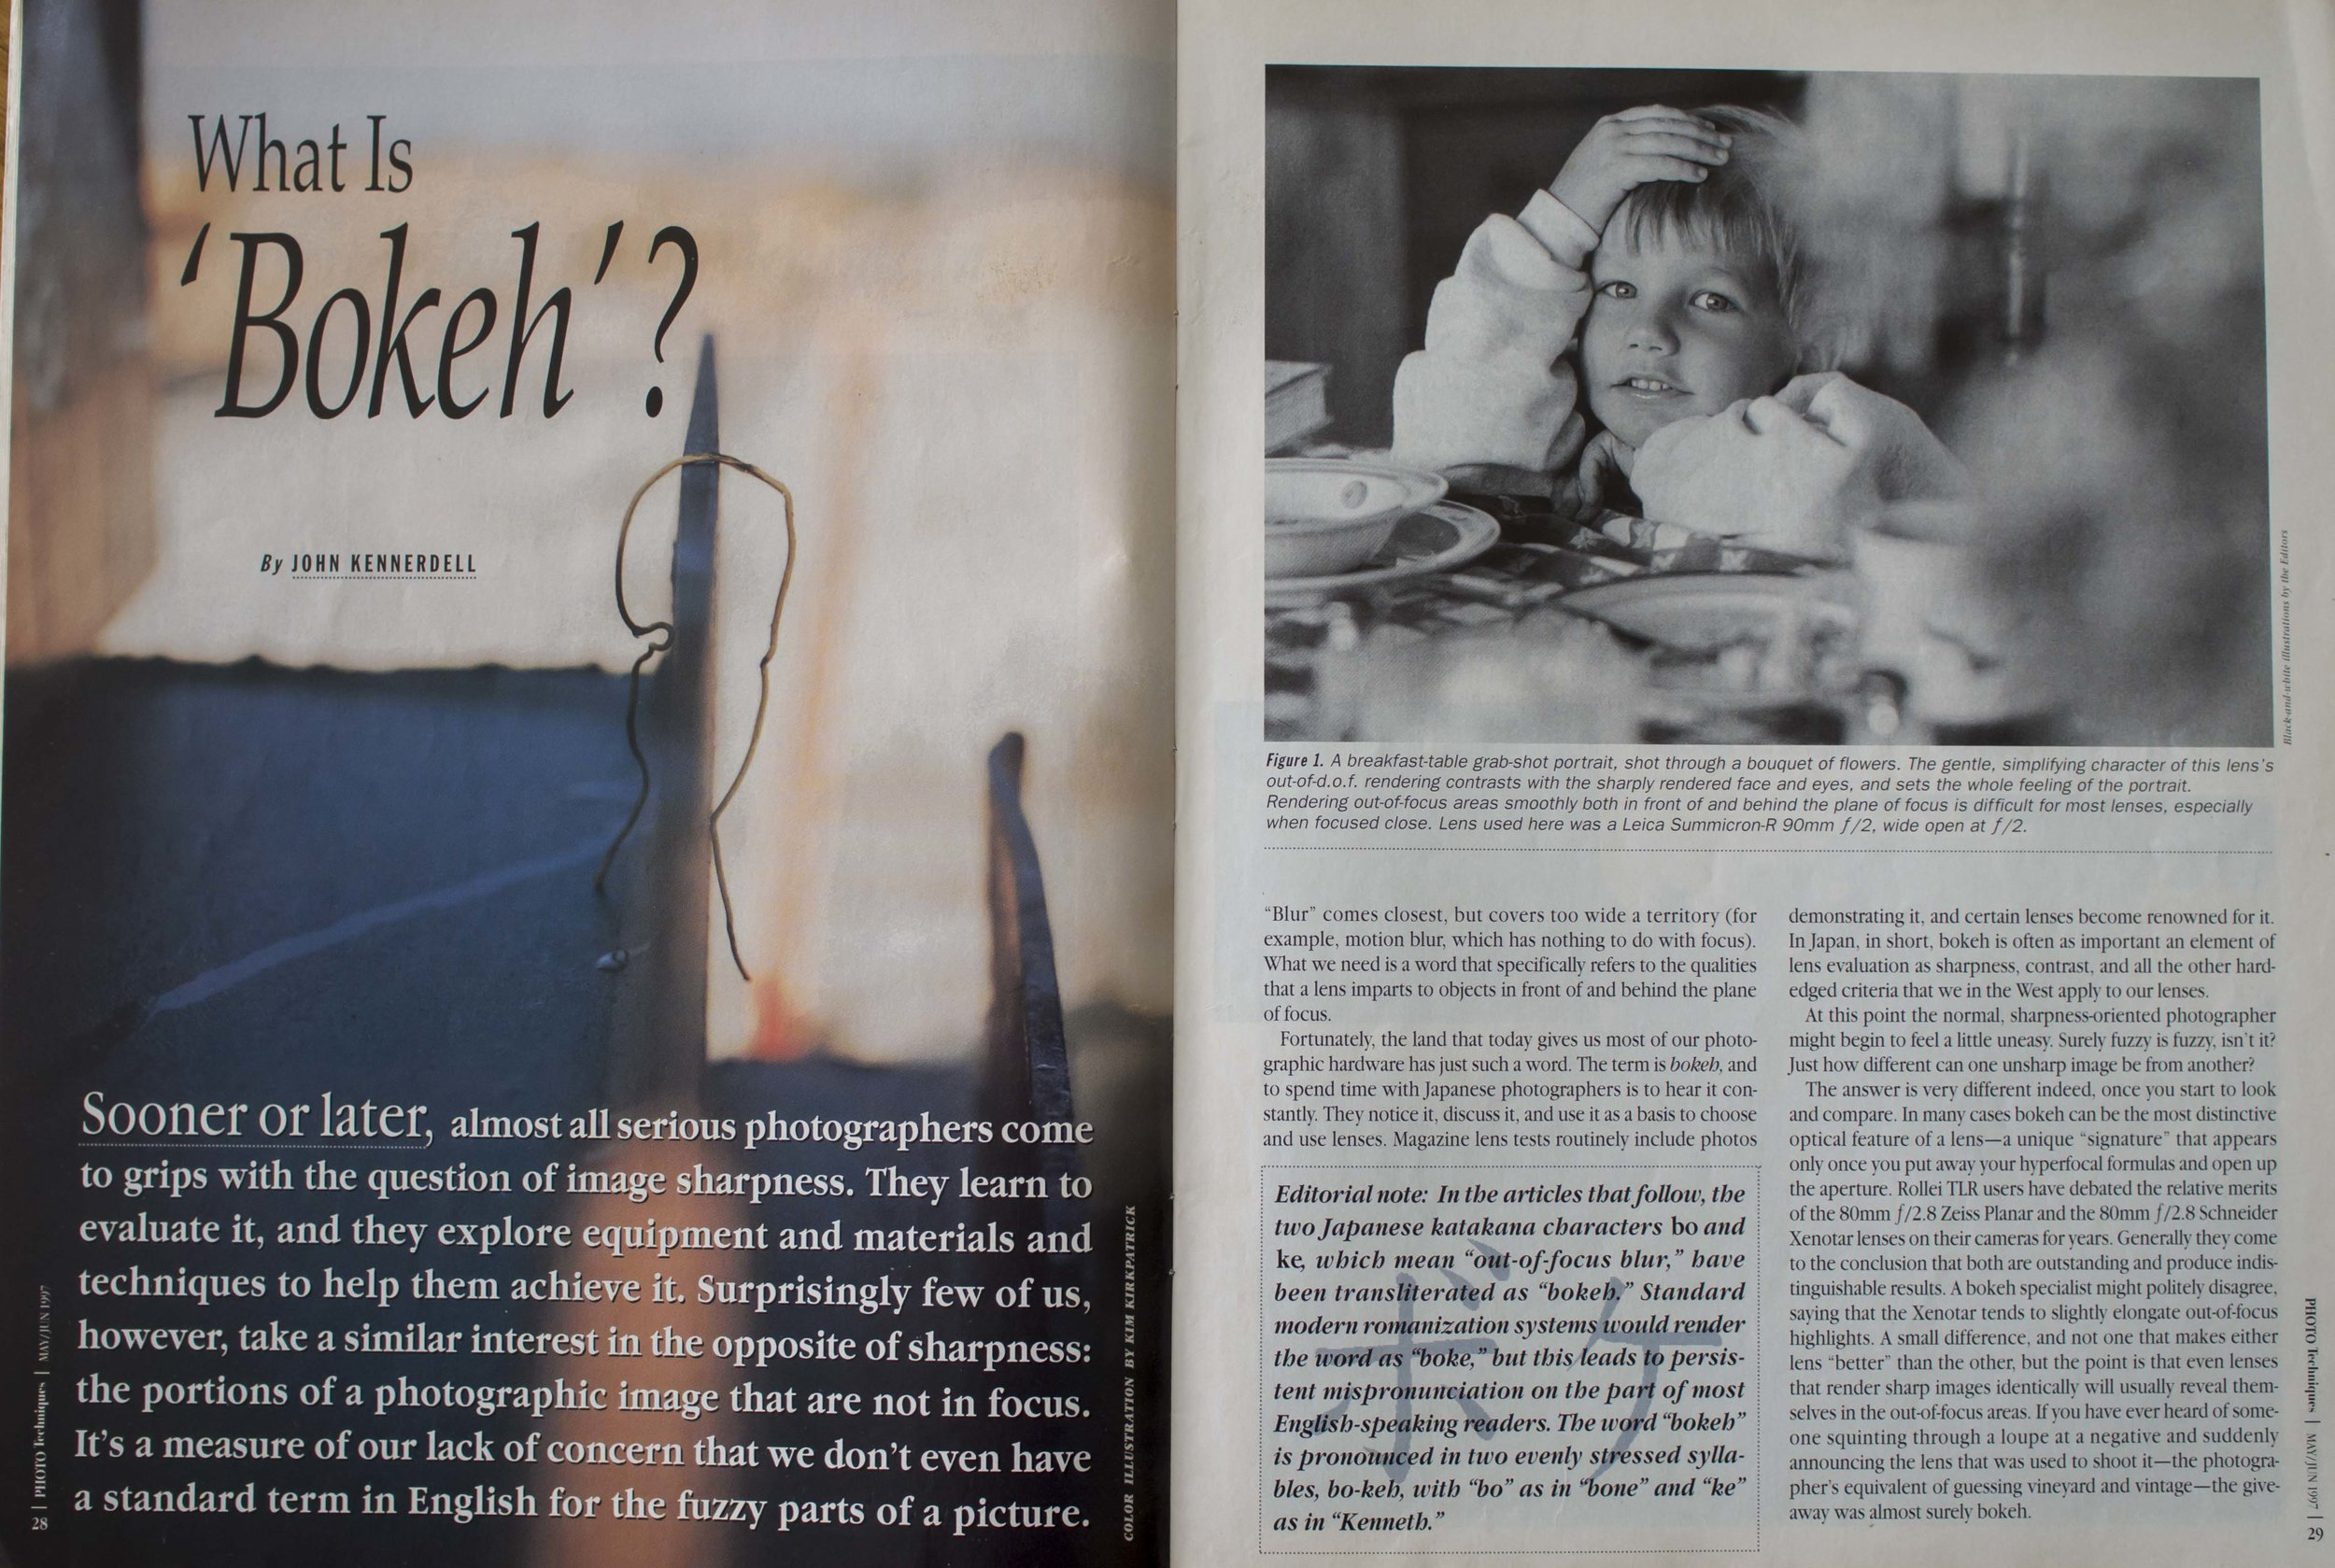 It took 28 pages before it got to the main article spread, but I was instantly hooked. It had the perfect combination (for me) of being relevant information, a reveal of mysterious secrets and eminently applicable technique. It did not hurt that at the time, I was using two of the lenses in the samples (100 f2.8 EF macro, the old one, and the first EF 35 f2) and it also referenced a brand I had just moved out of, but had great fondness for, Zenza Bronica.